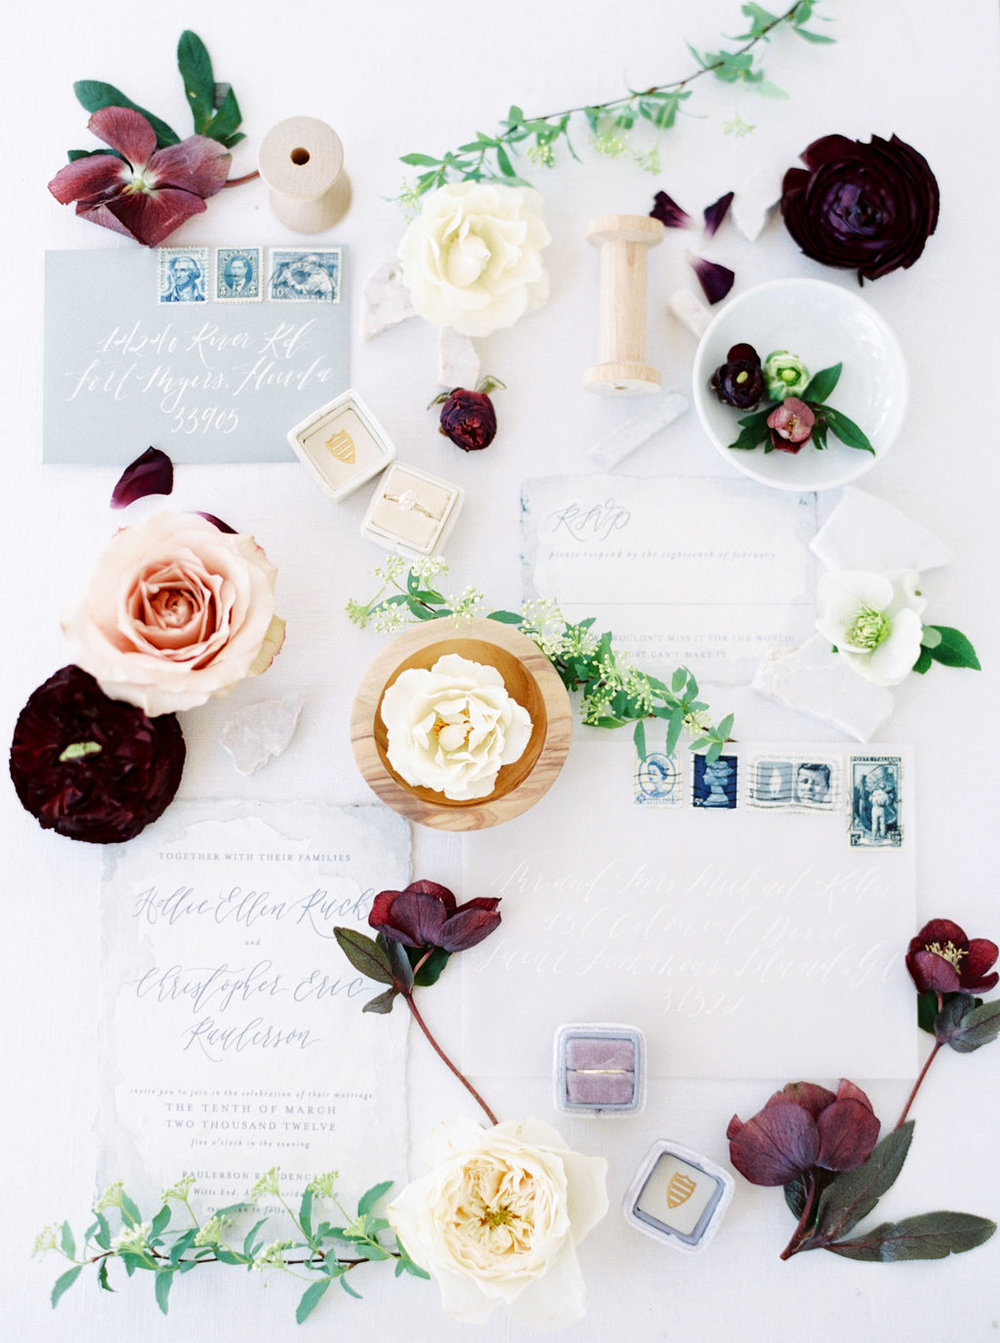 Calligraphy and vellum invitation